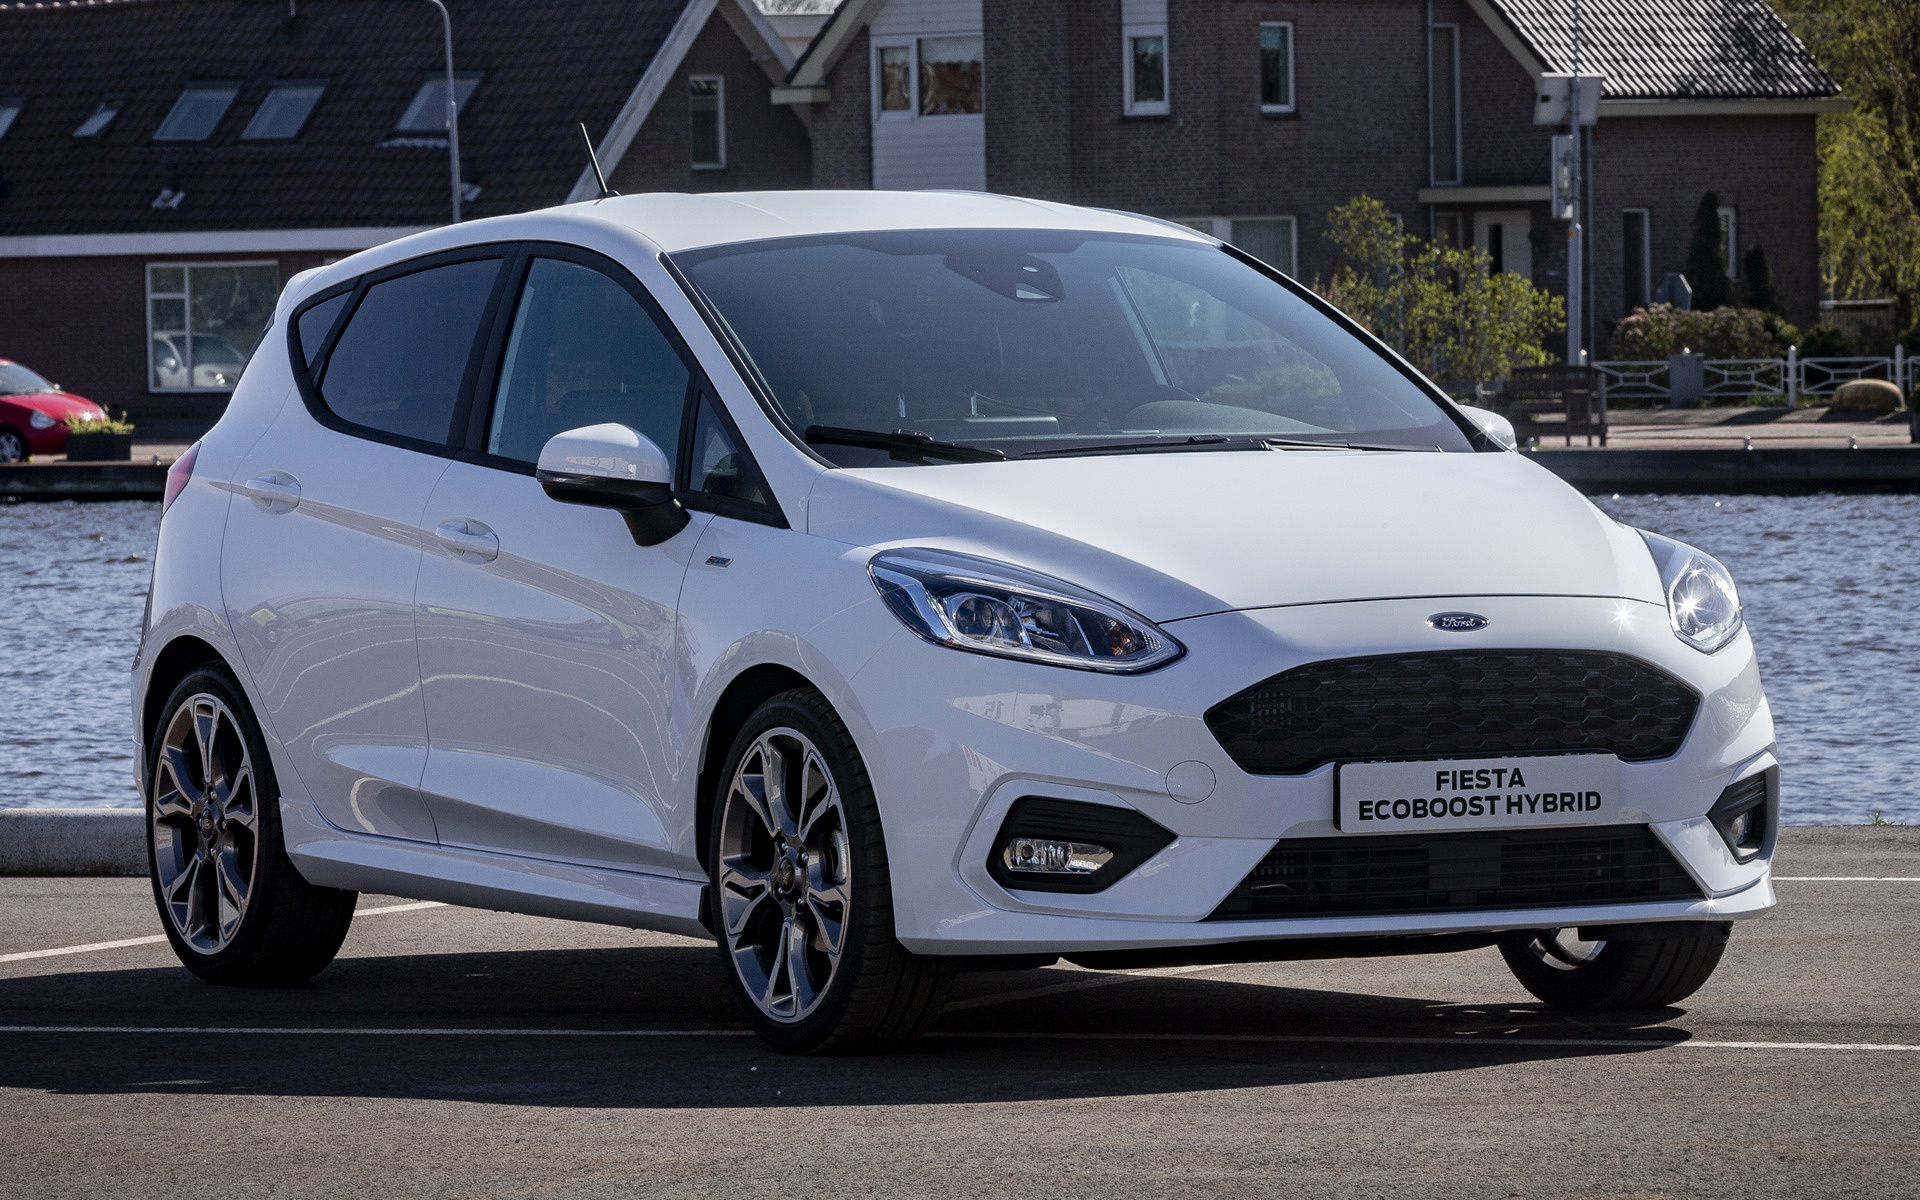 2019 Ford Fiesta Hybrid ST-Line [3-door] - Wallpapers and HD